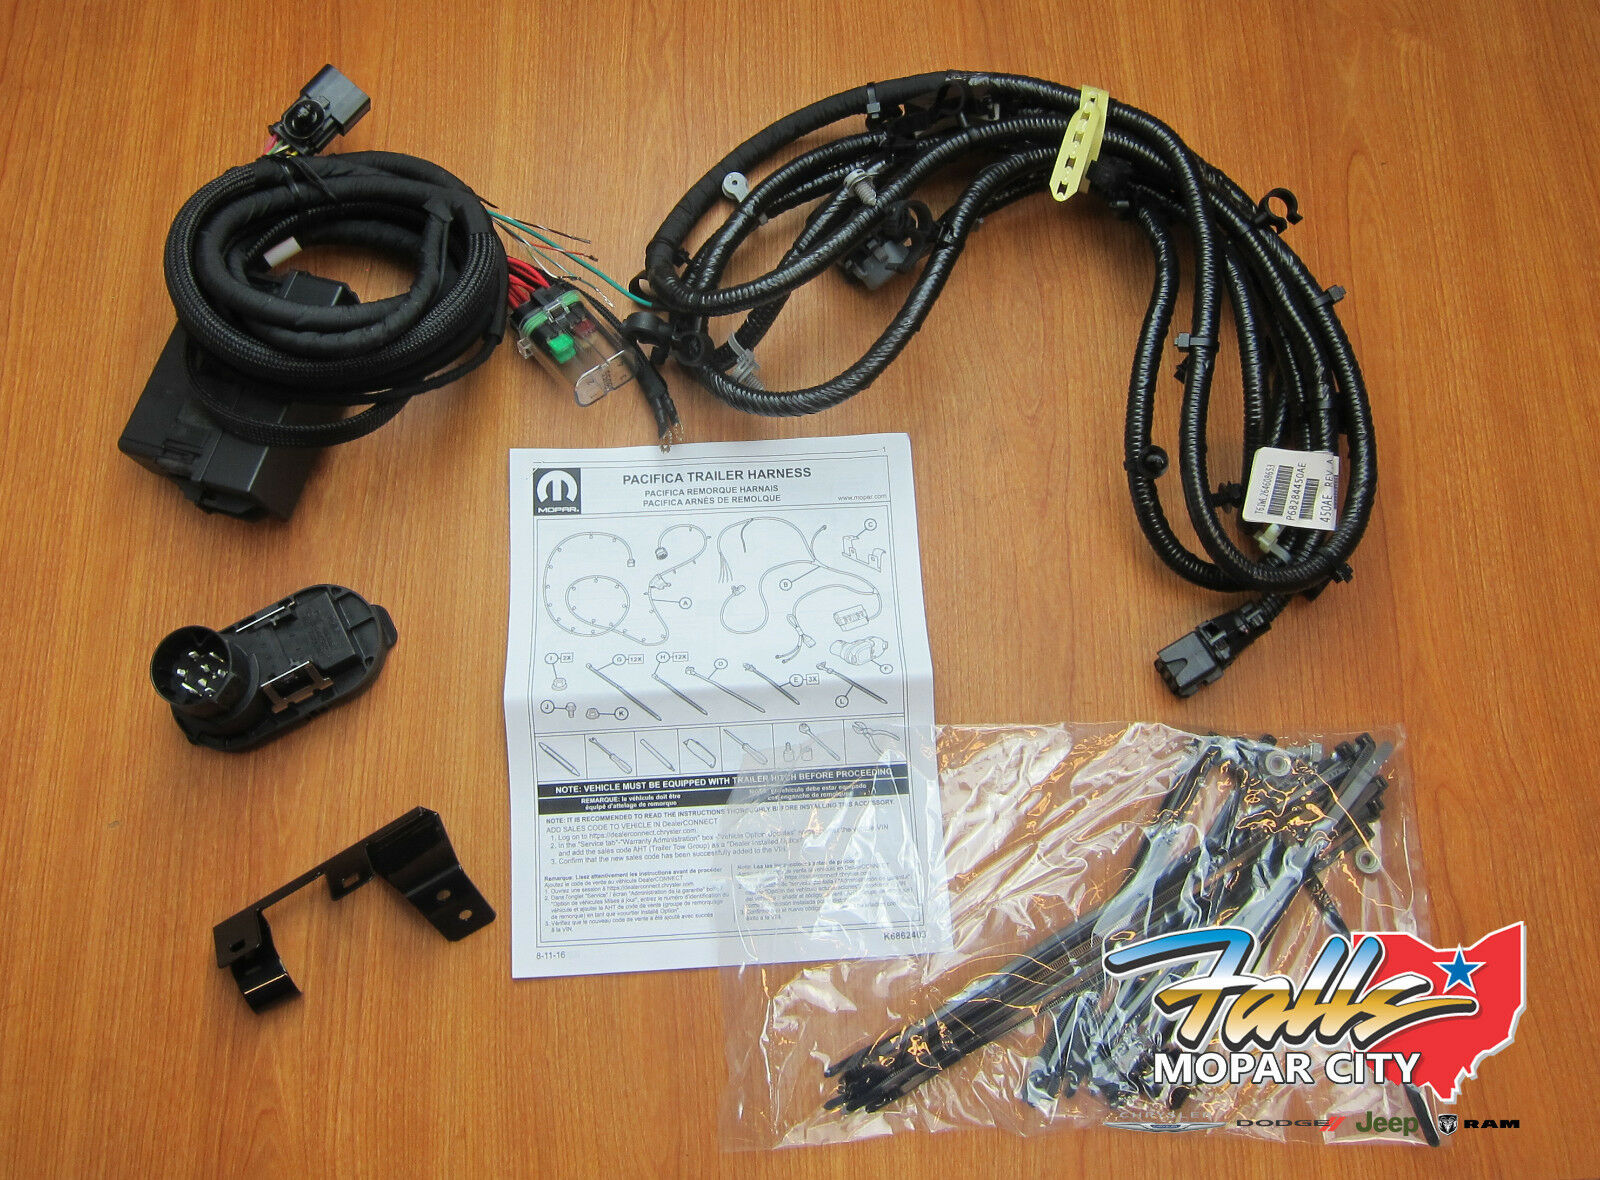 2017 2018 chrysler pacifica trailer tow hitch wiring harness kit rh ebay com 2006 chrysler pacifica trailer wiring harness 2018 chrysler pacifica trailer wiring